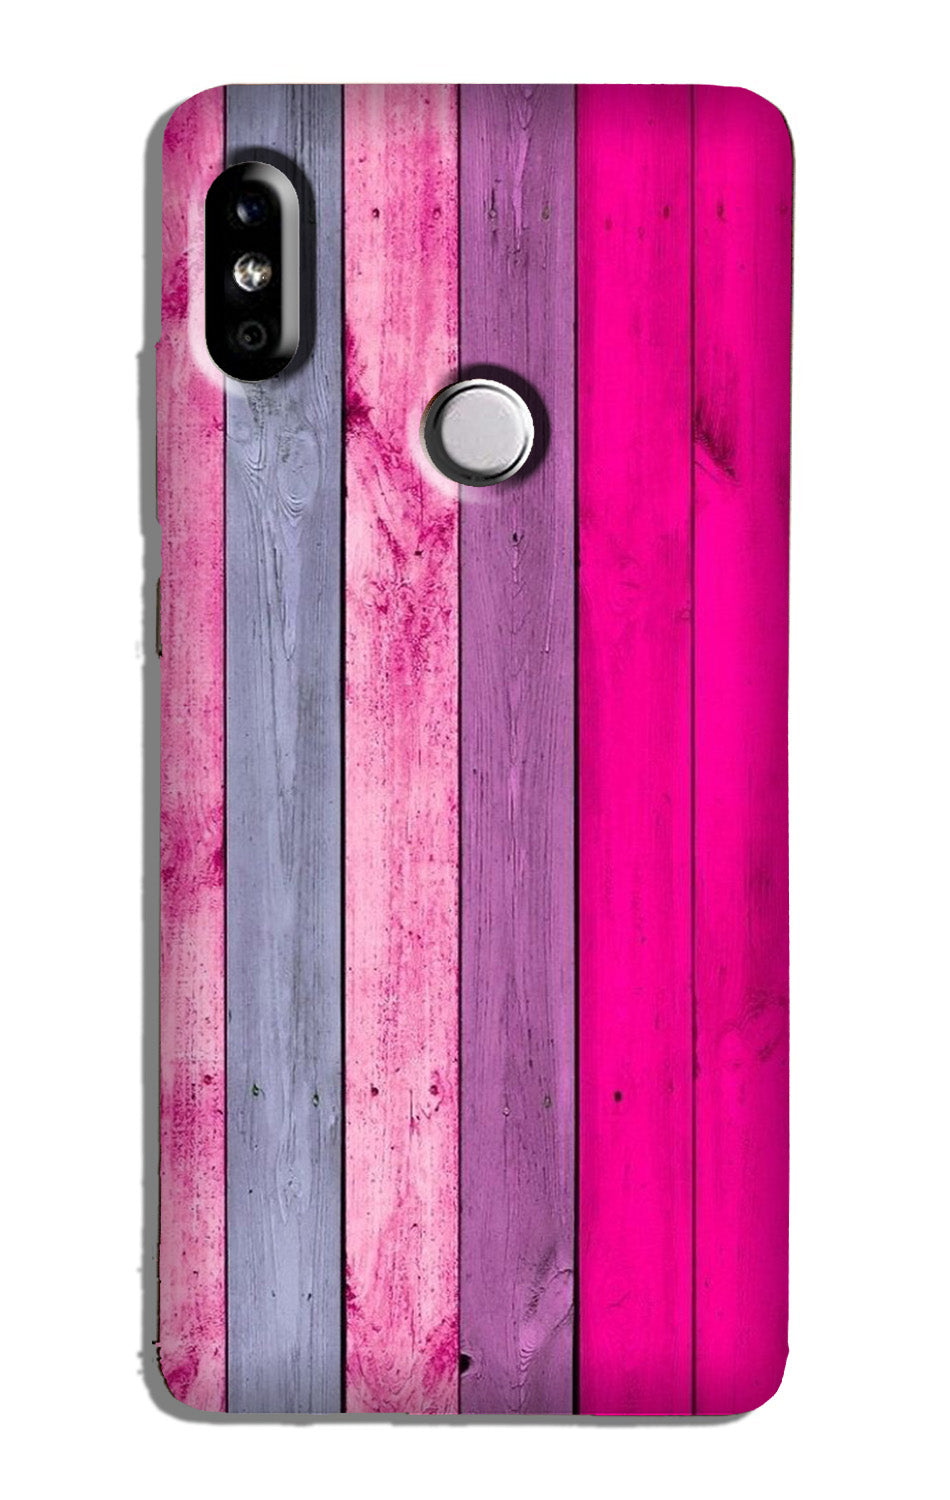 Wooden look Case for Redmi Note 6 Pro